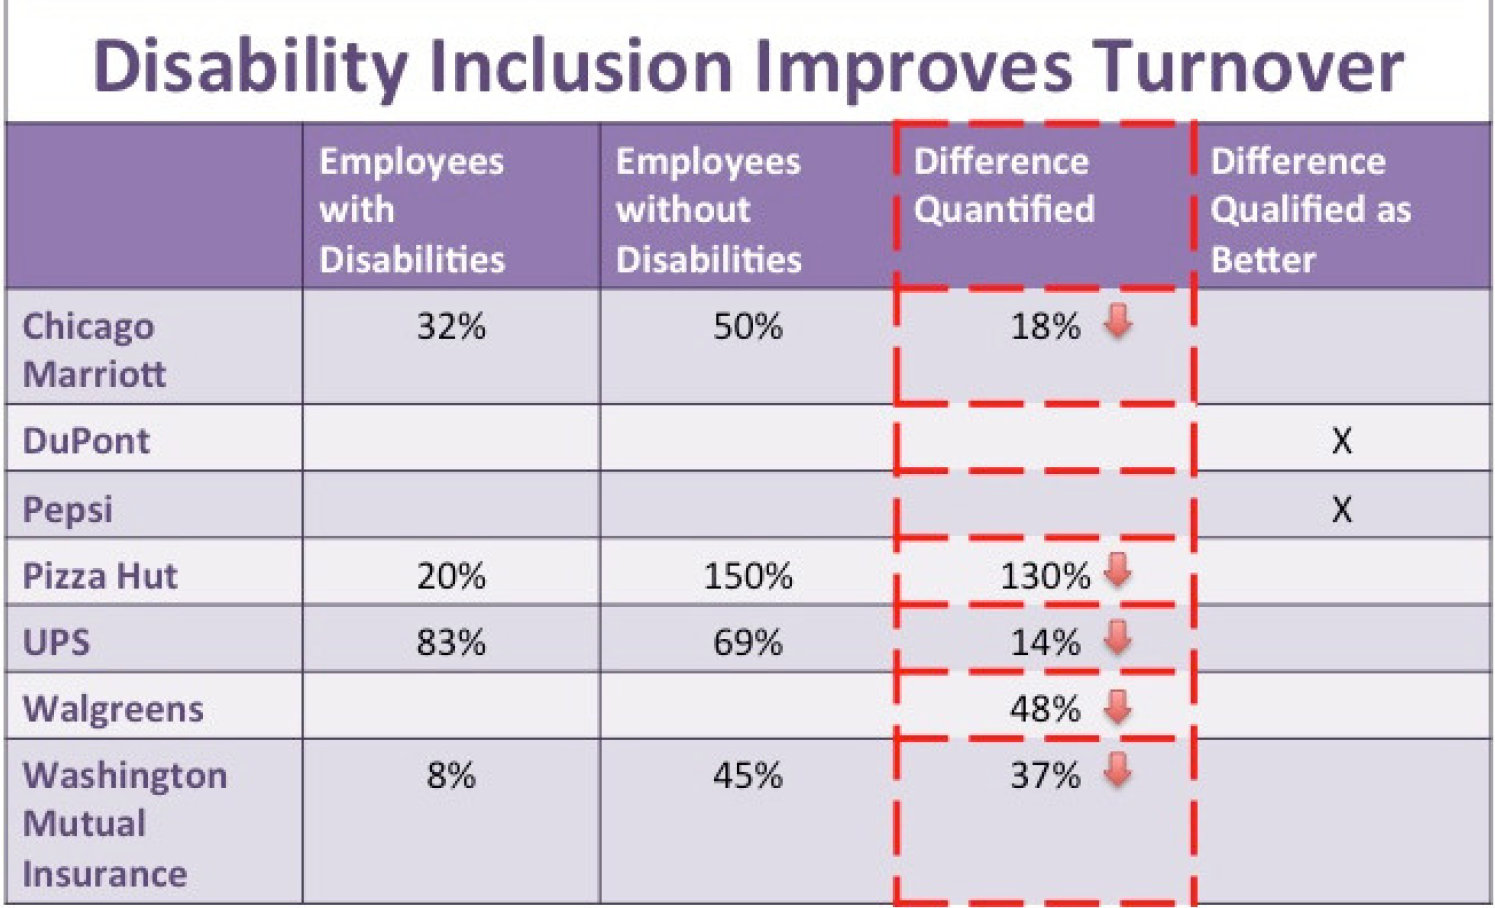 Table showing turnover improvements due to disability inclusion